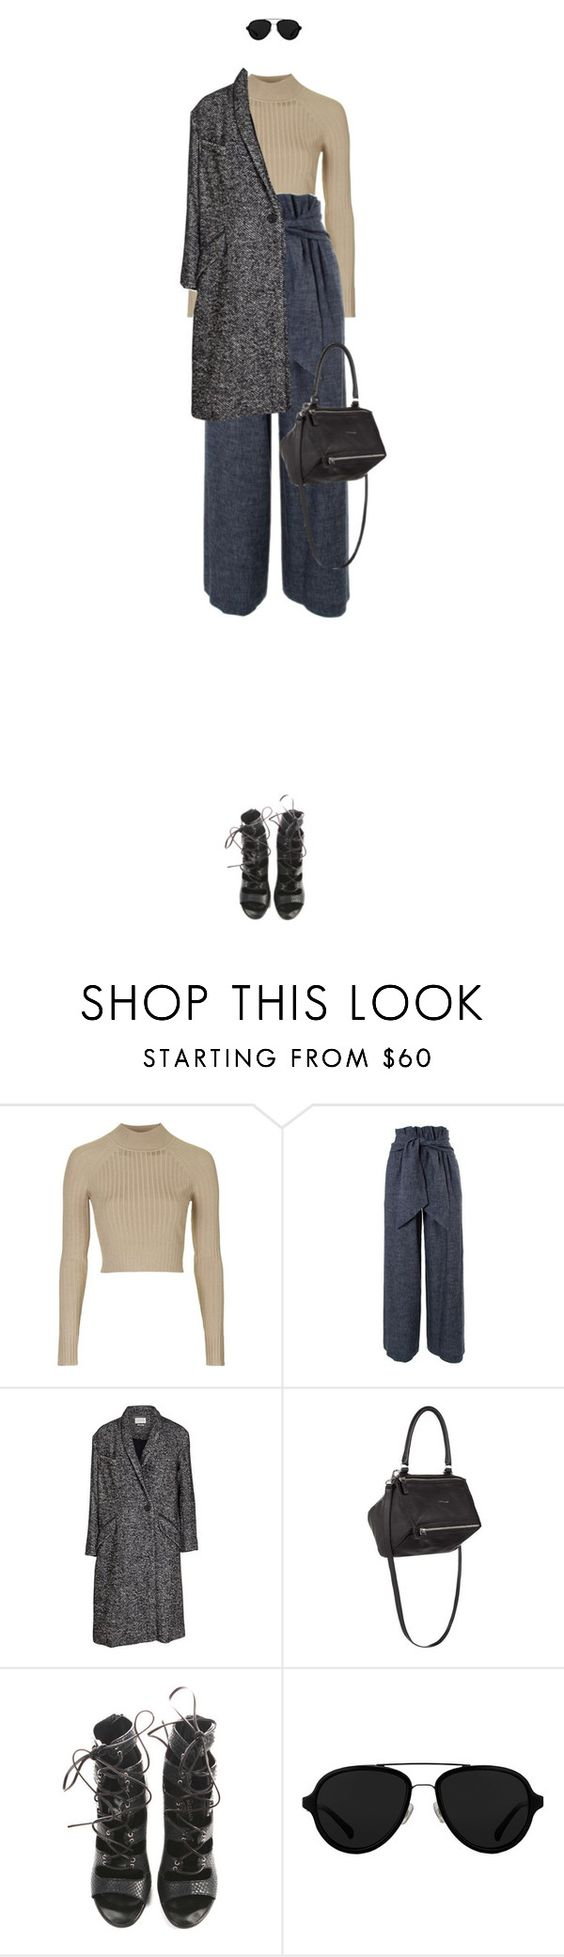 """Untitled #2587"" by mitchelcrandell ❤ liked on Polyvore featuring Topshop, MSGM, Étoile Isabel Marant, Givenchy, Balmain, 3.1 Phillip Lim, women's clothing, women's fashion, women and female"